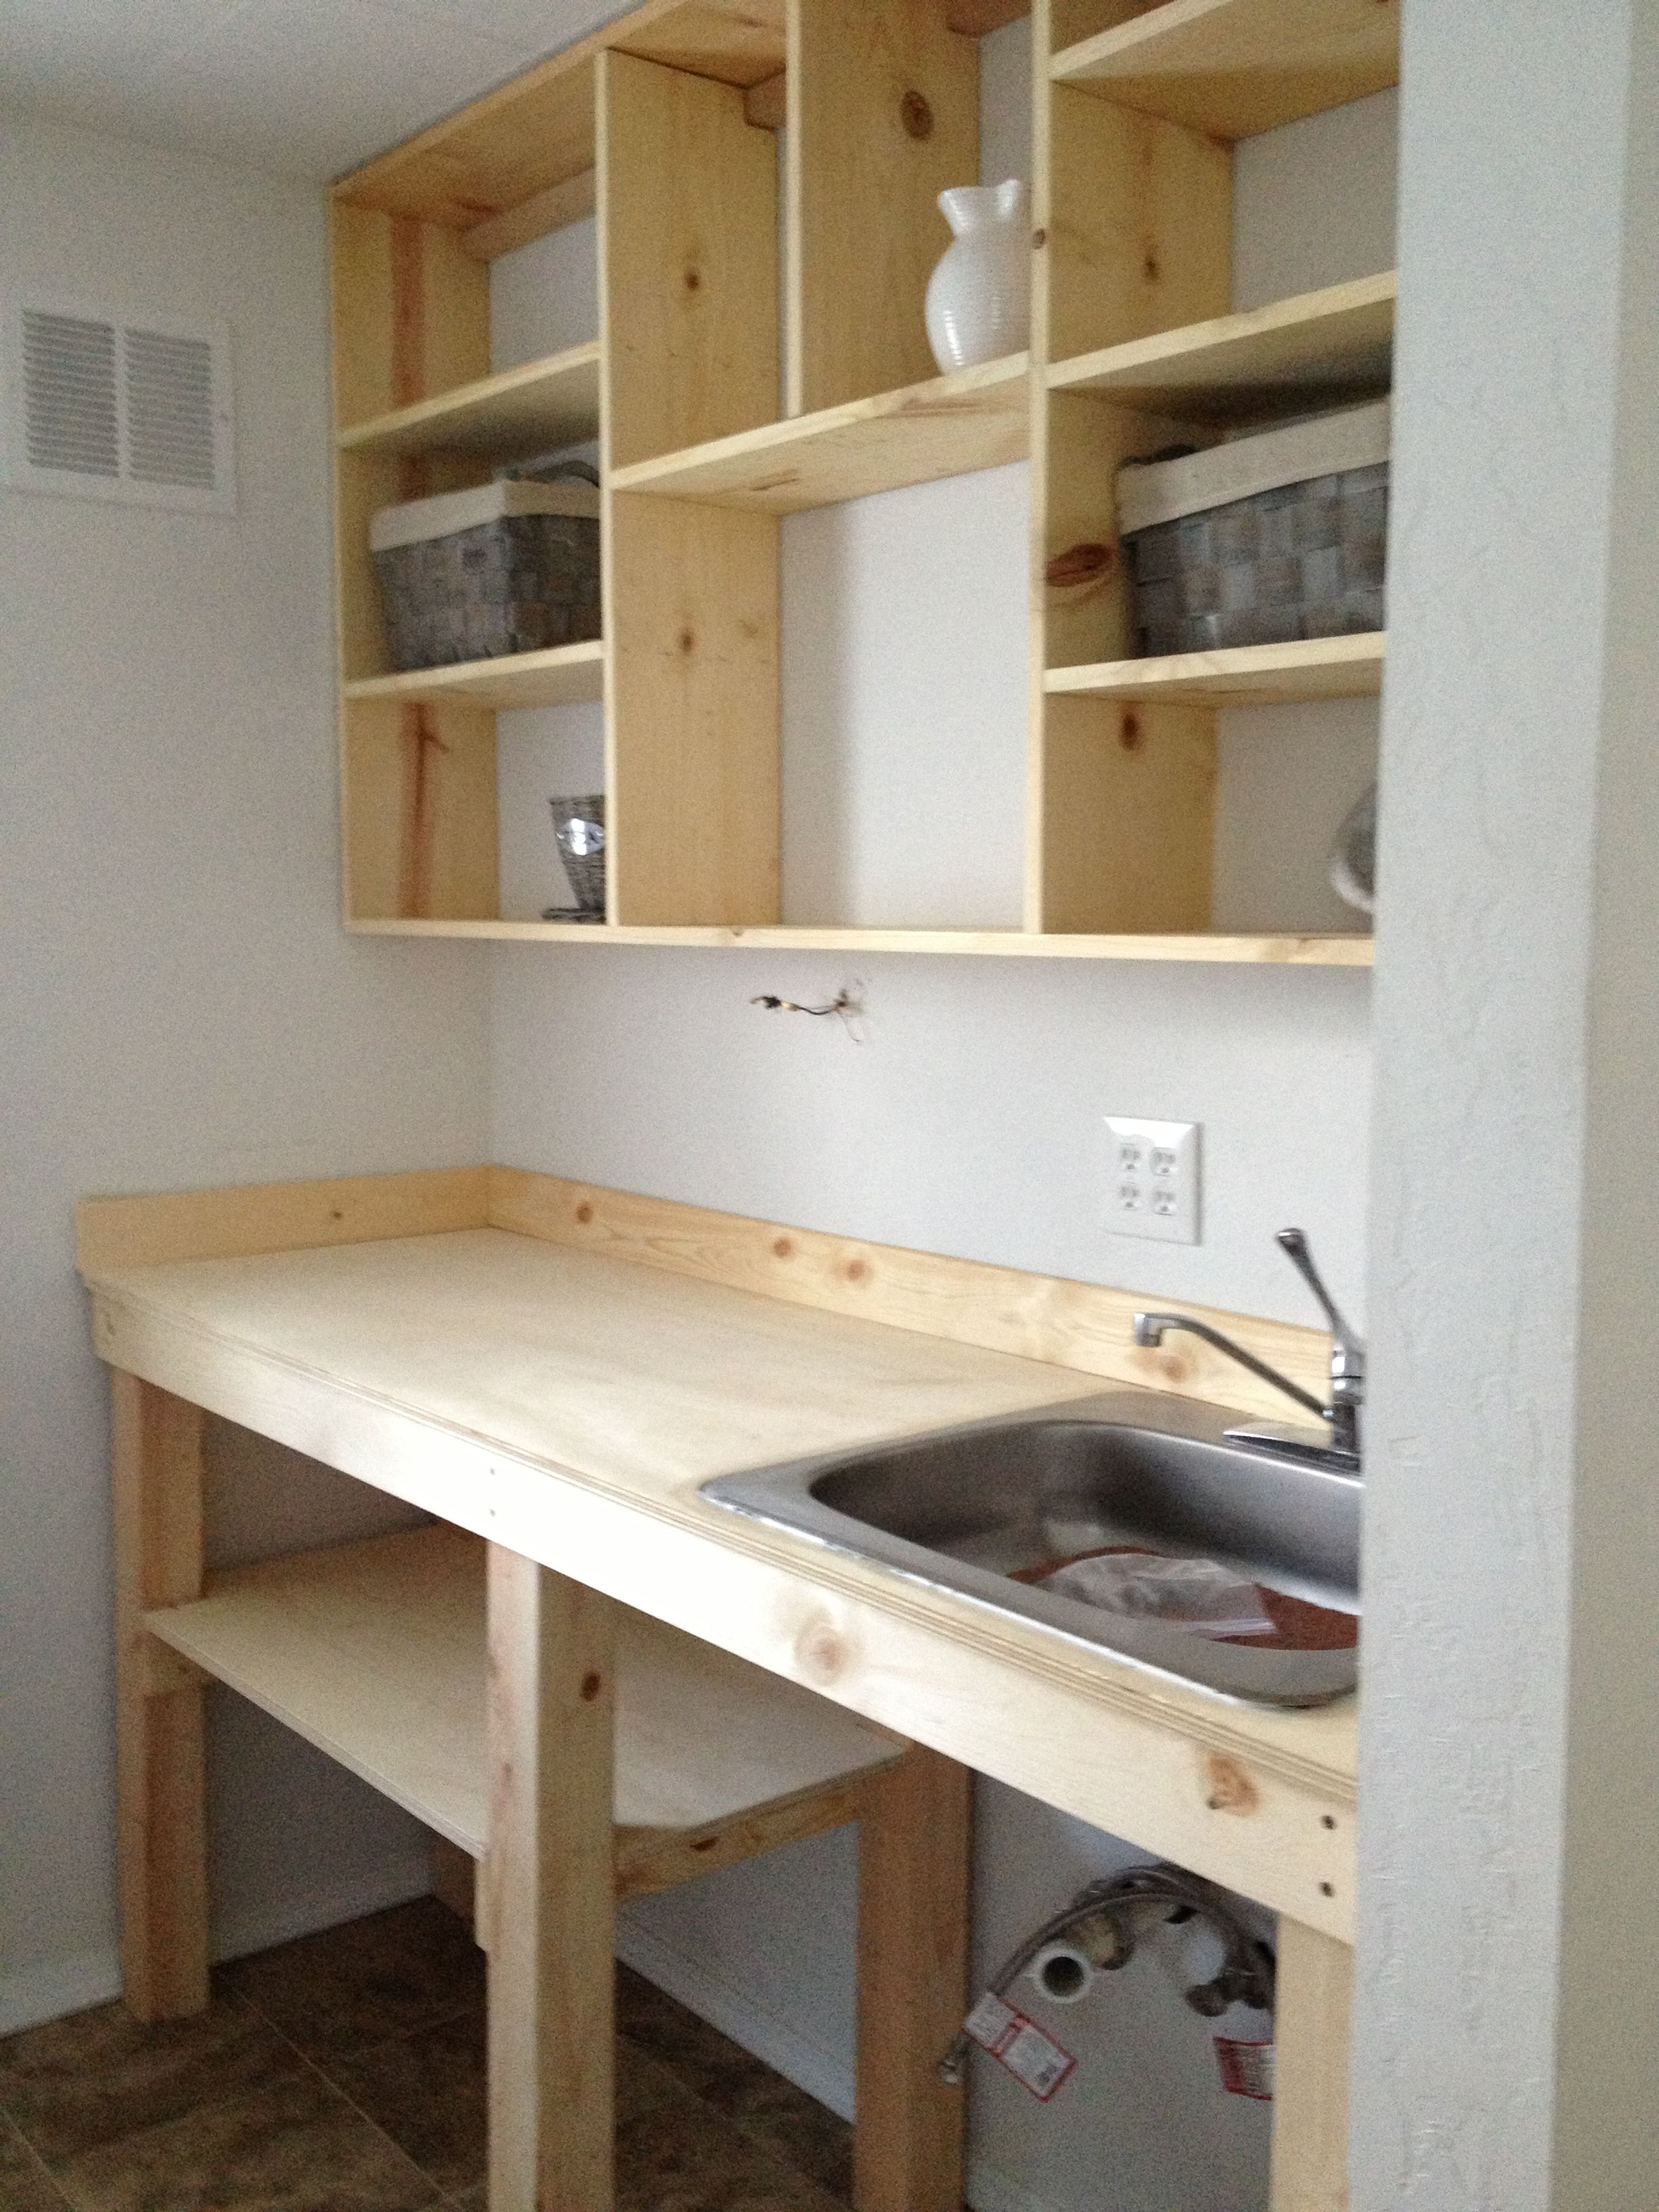 Rustic Kitchenette! Great for temporary use?